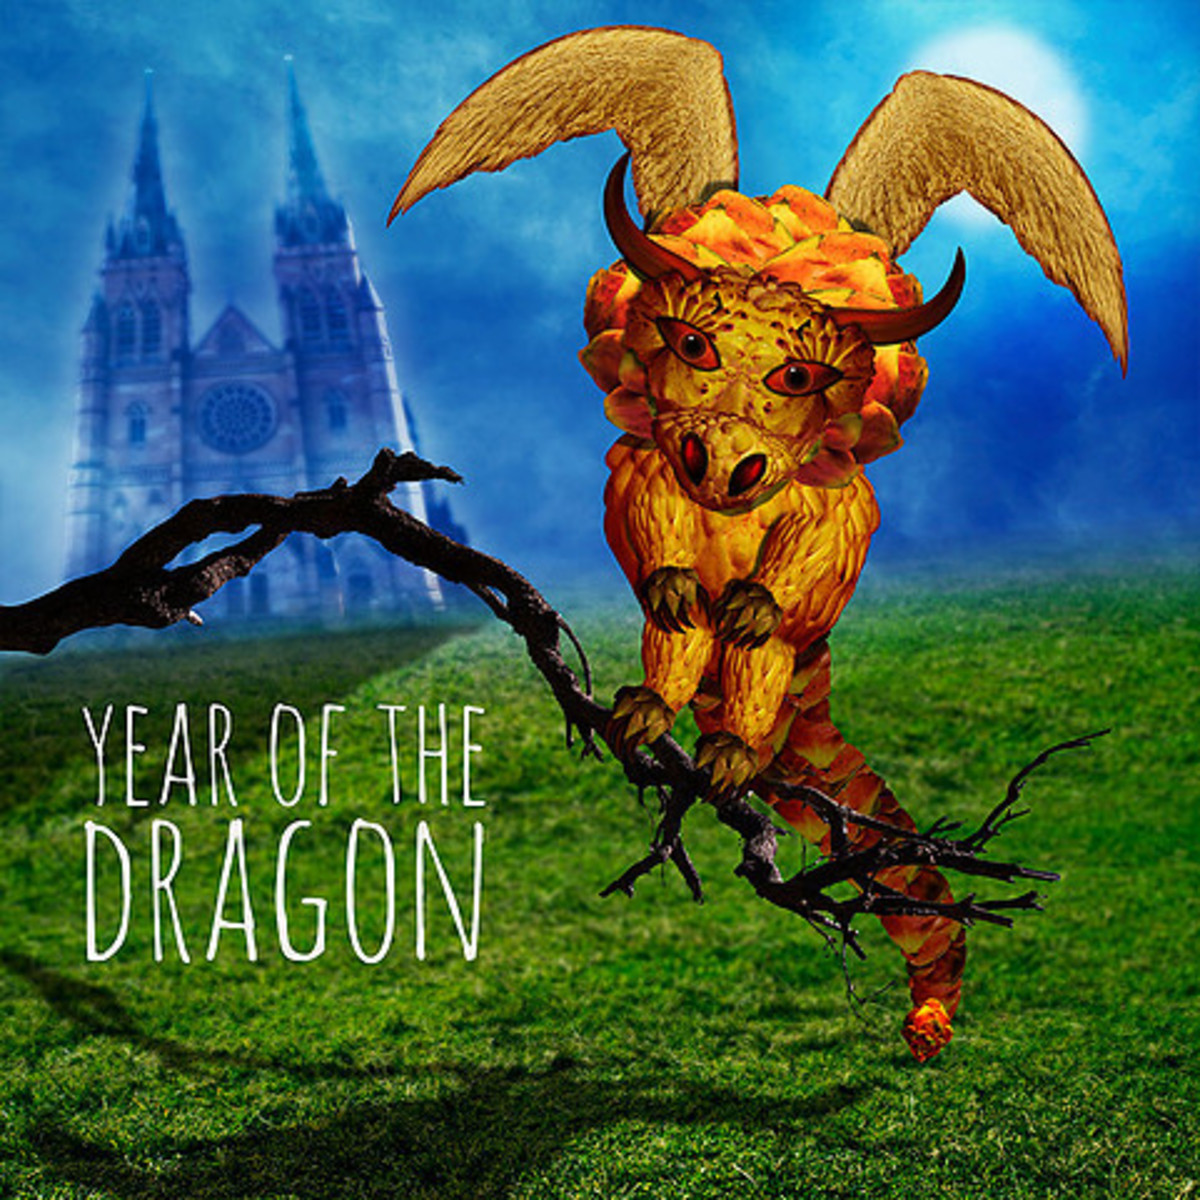 Carrie Webster - The Year of The Dragon